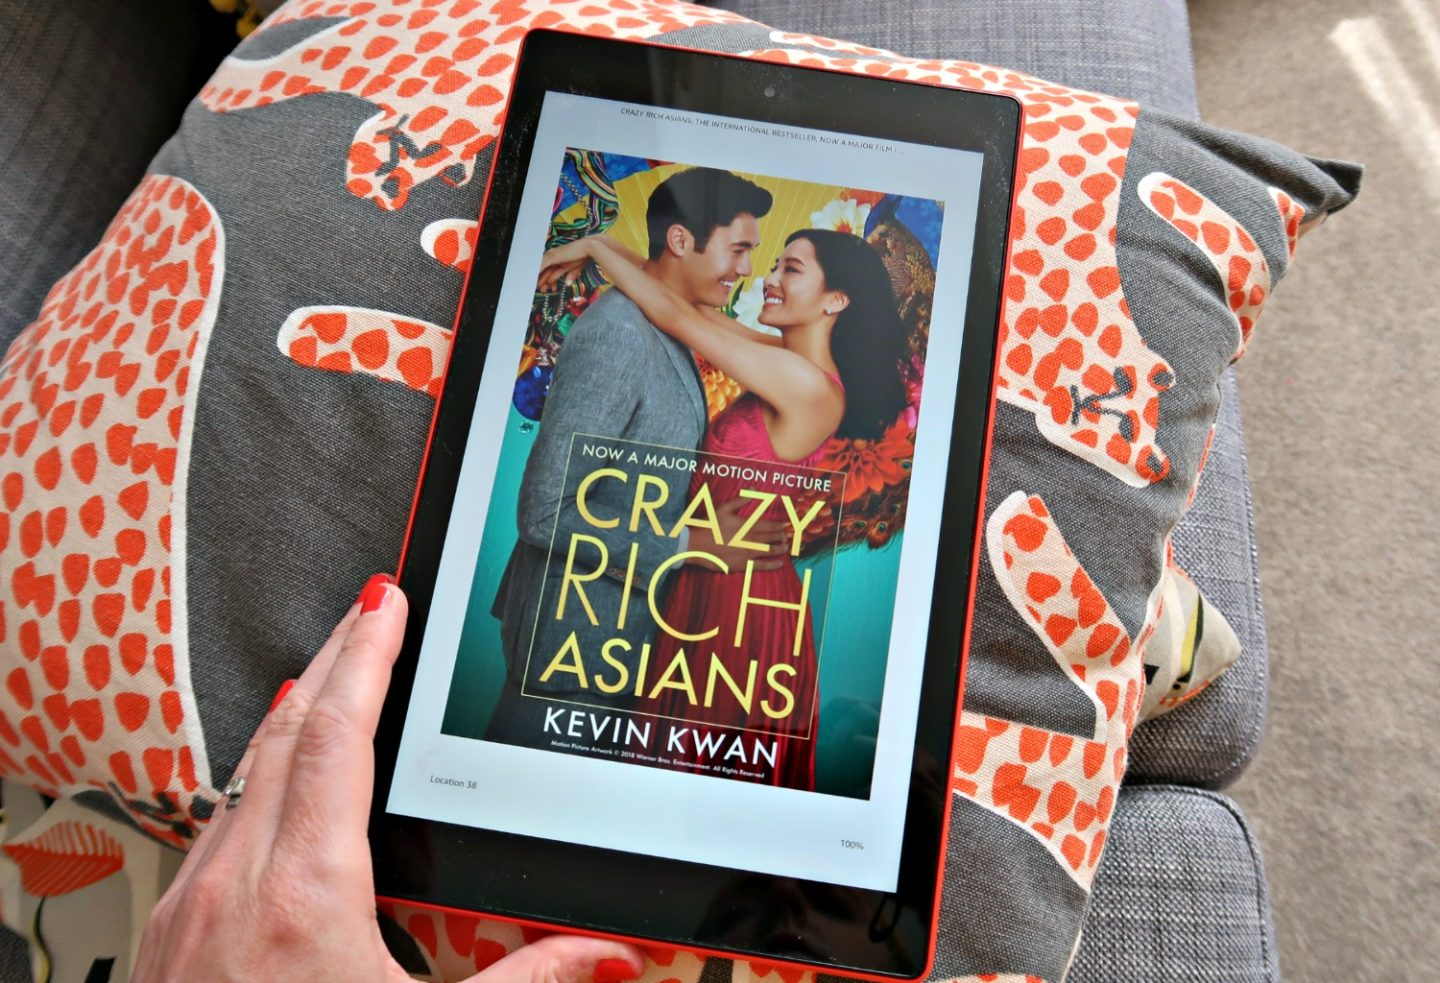 Crazy Rich Asians review - book by Kevin Kwan